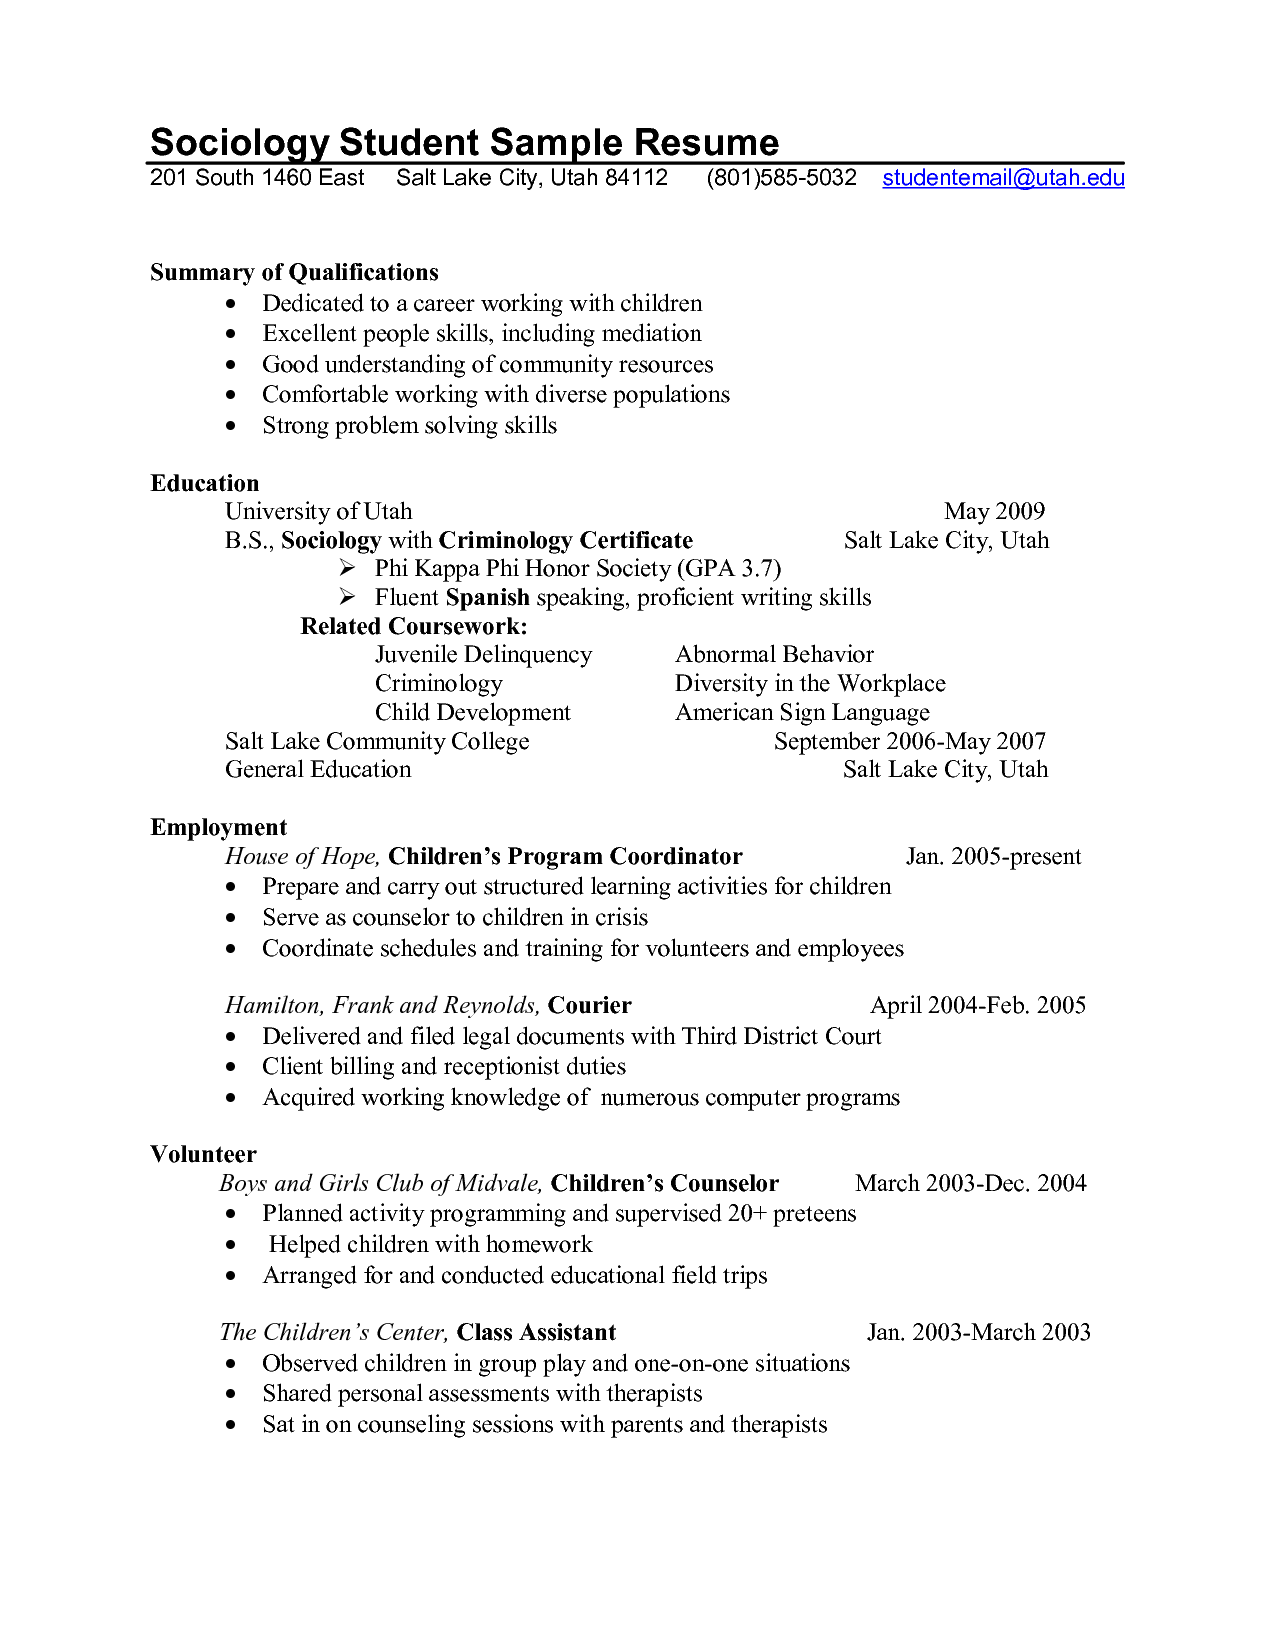 Professional School Counselor Resume | Sociology Student Sample ...